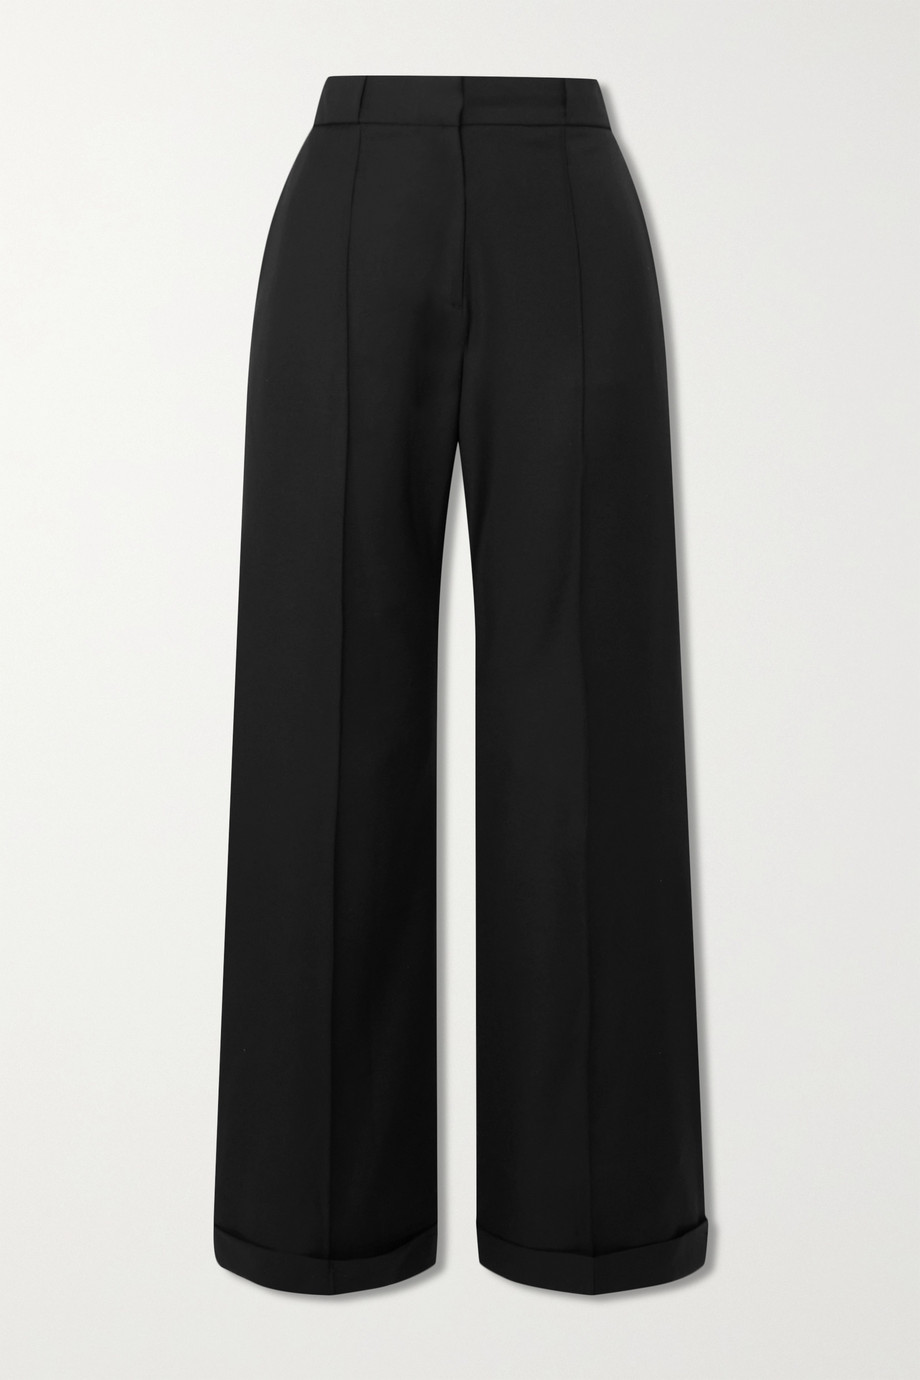 GAUGE81 Jachin wool wide-leg pants